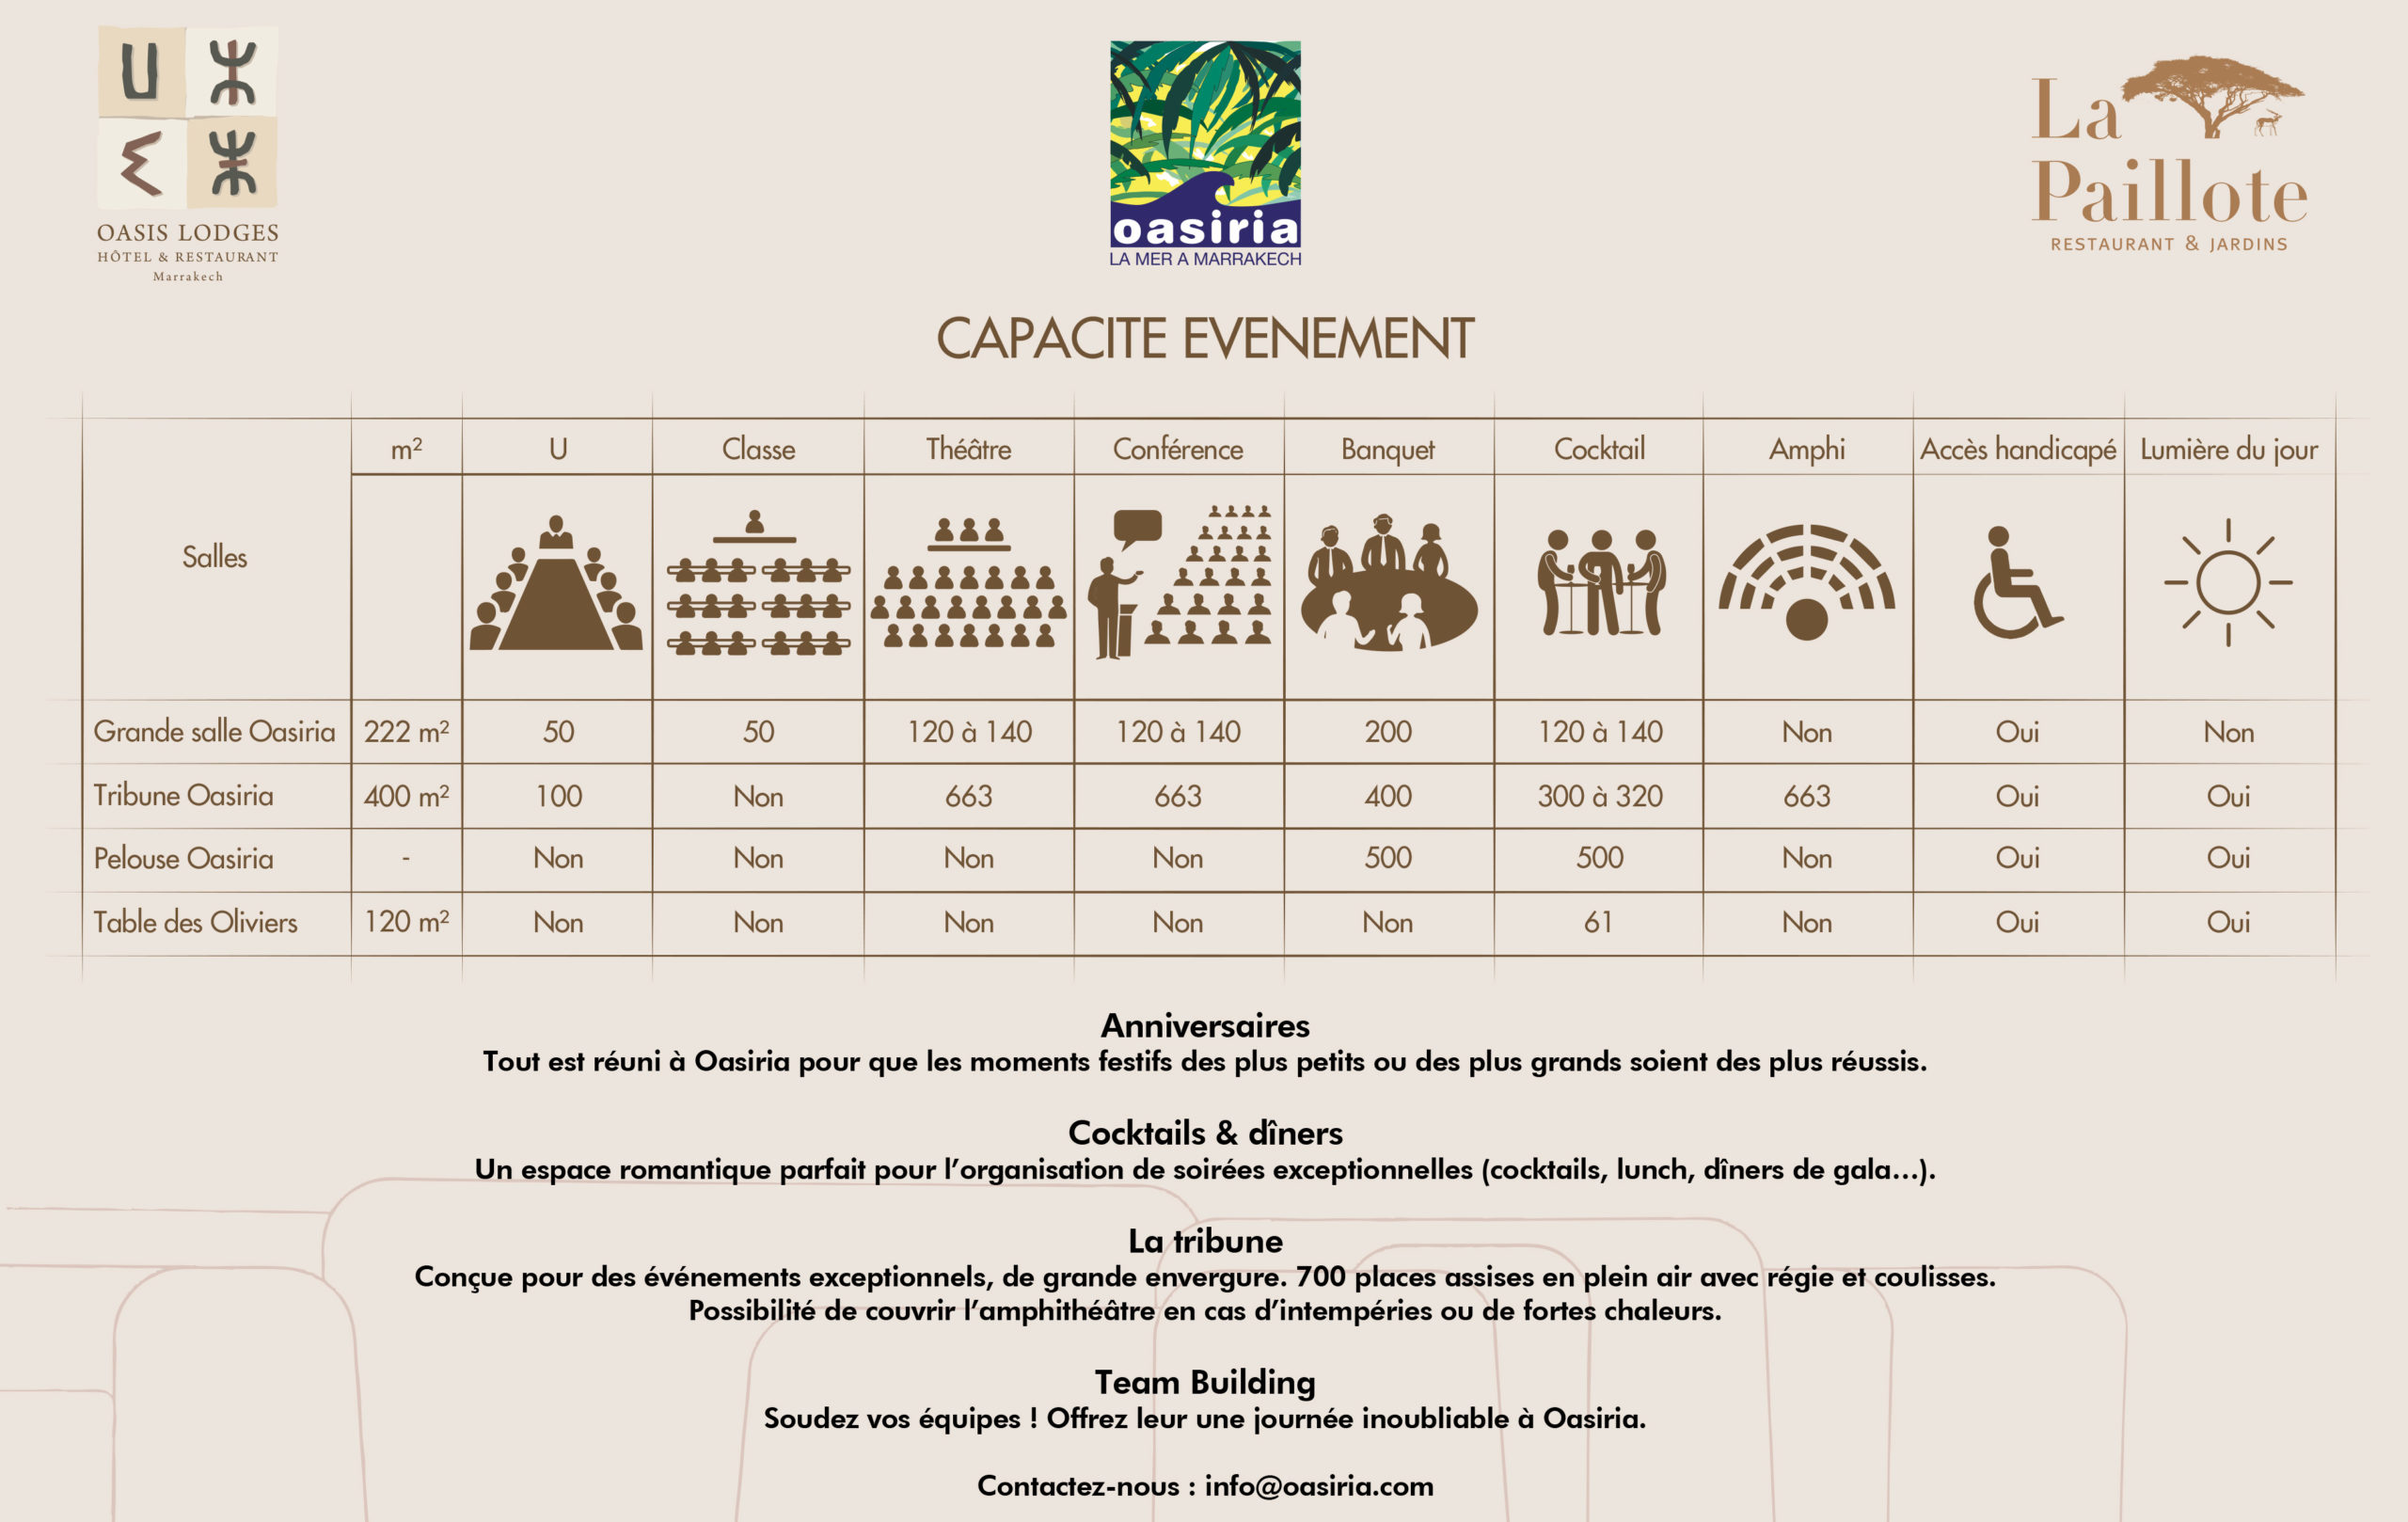 CAPACITE EVENEMENT